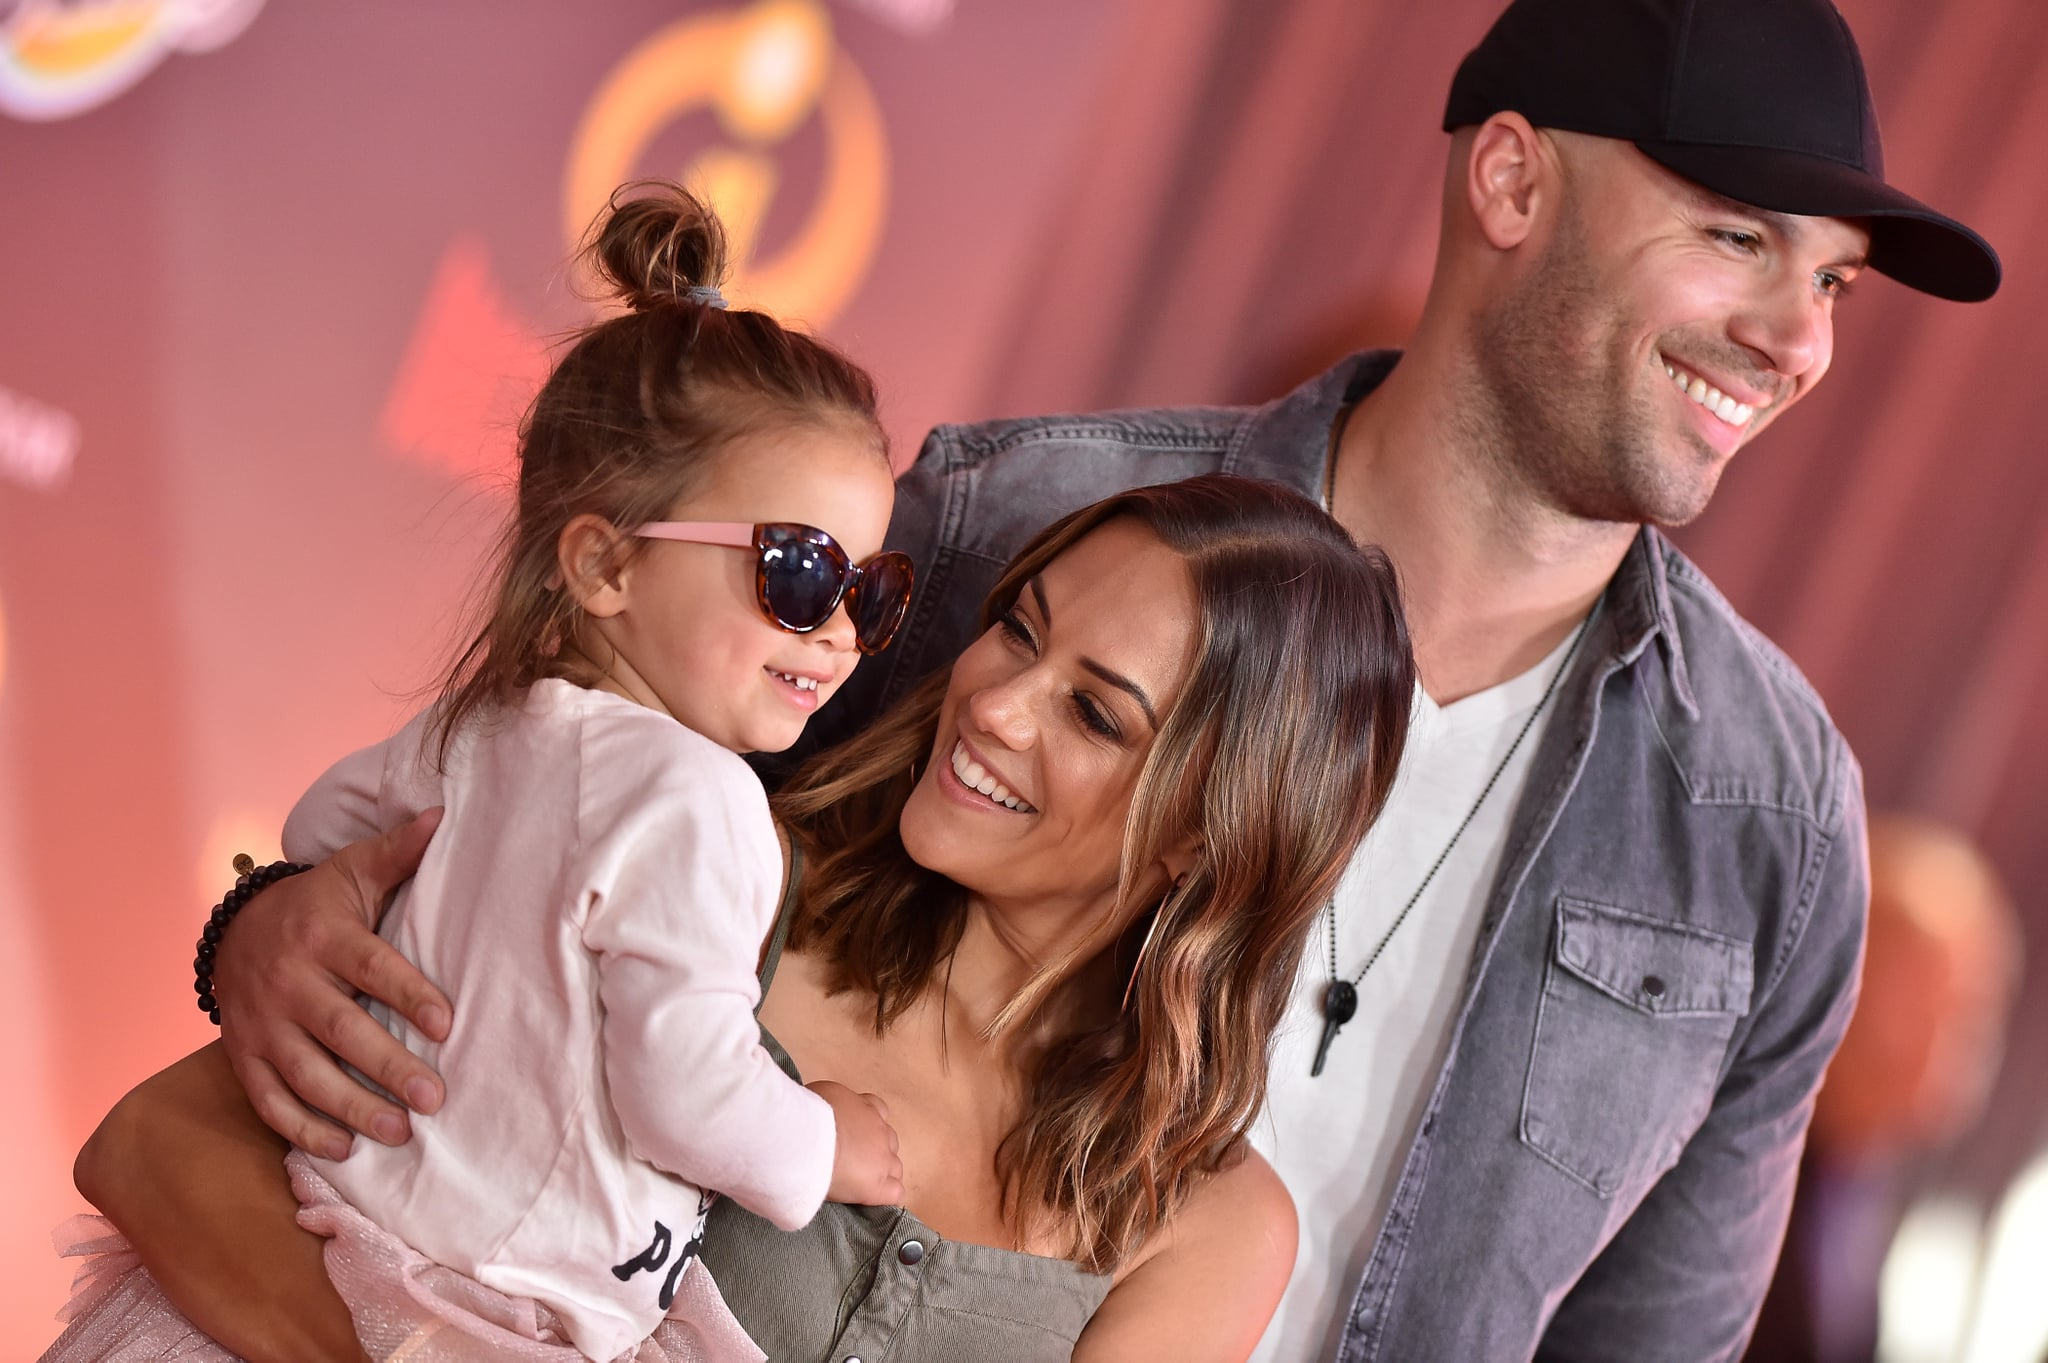 LOS ANGELES, CA - JUNE 05:  Actress Jana Kramer, Mike Caussin and daughter Jolie Rae Caussin attend the World Premiere of Disney and Pixar's 'Incredibles 2' on June 5, 2018 in Los Angeles, California.  (Photo by Axelle/Bauer-Griffin/FilmMagic)